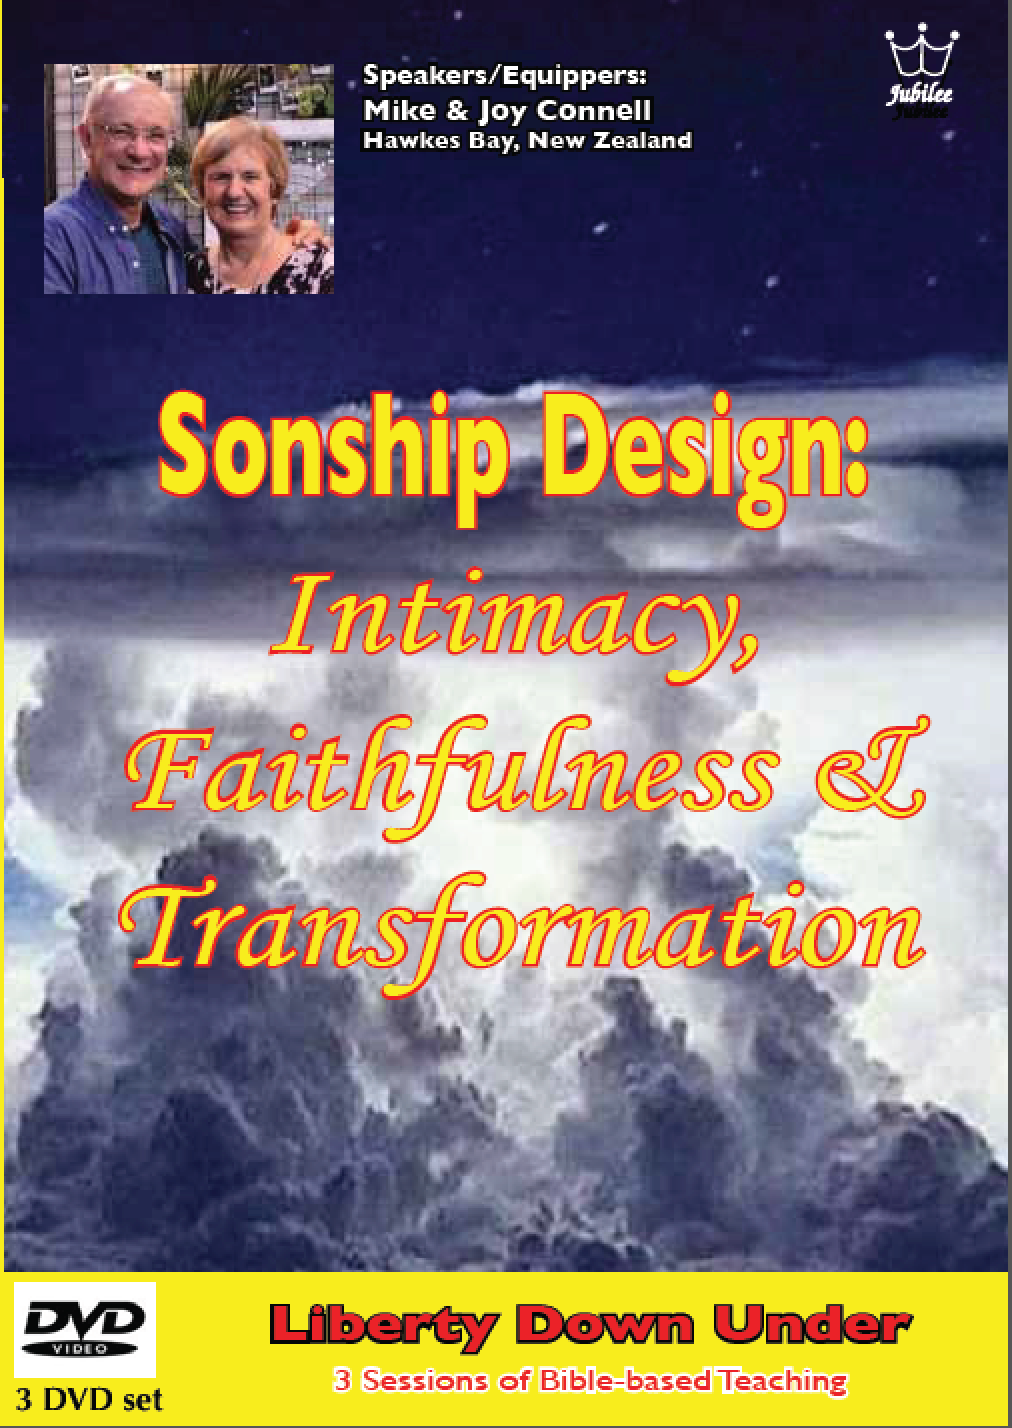 Sonship Design: Intimacy, Assignment & Transformation,  # DSDC   DVD set